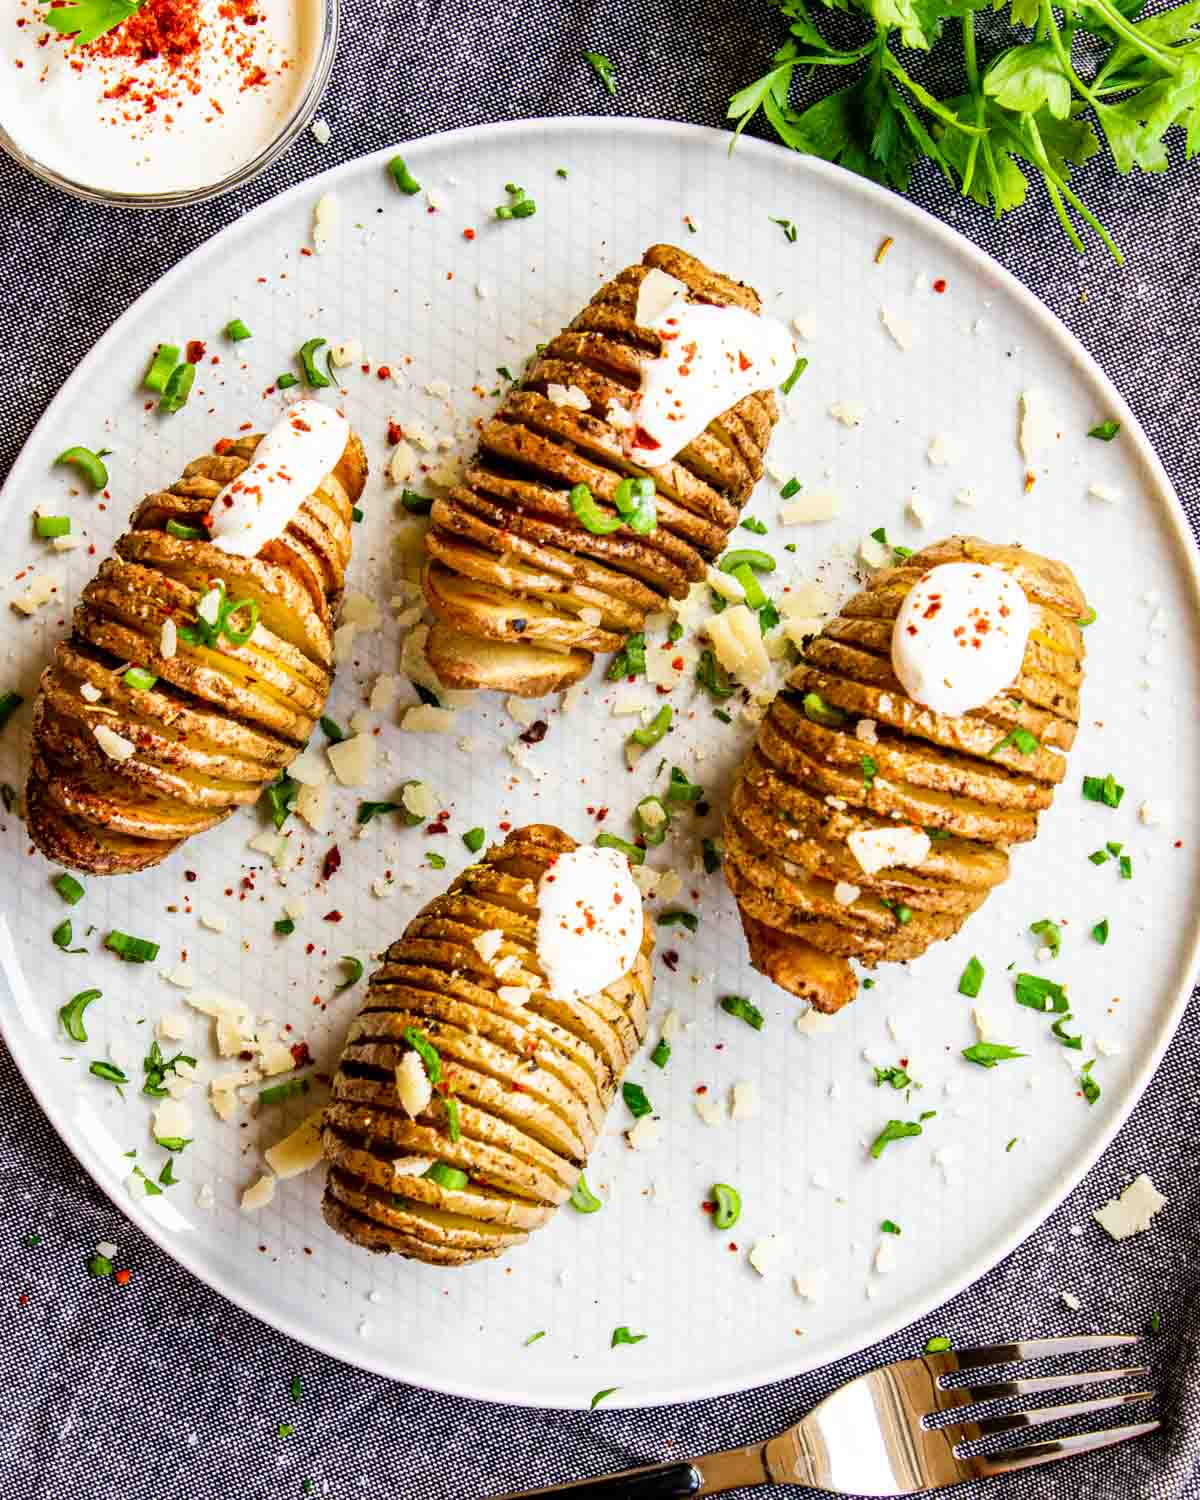 4 hasselback potatoes on a white plate with sour cream and parsley.